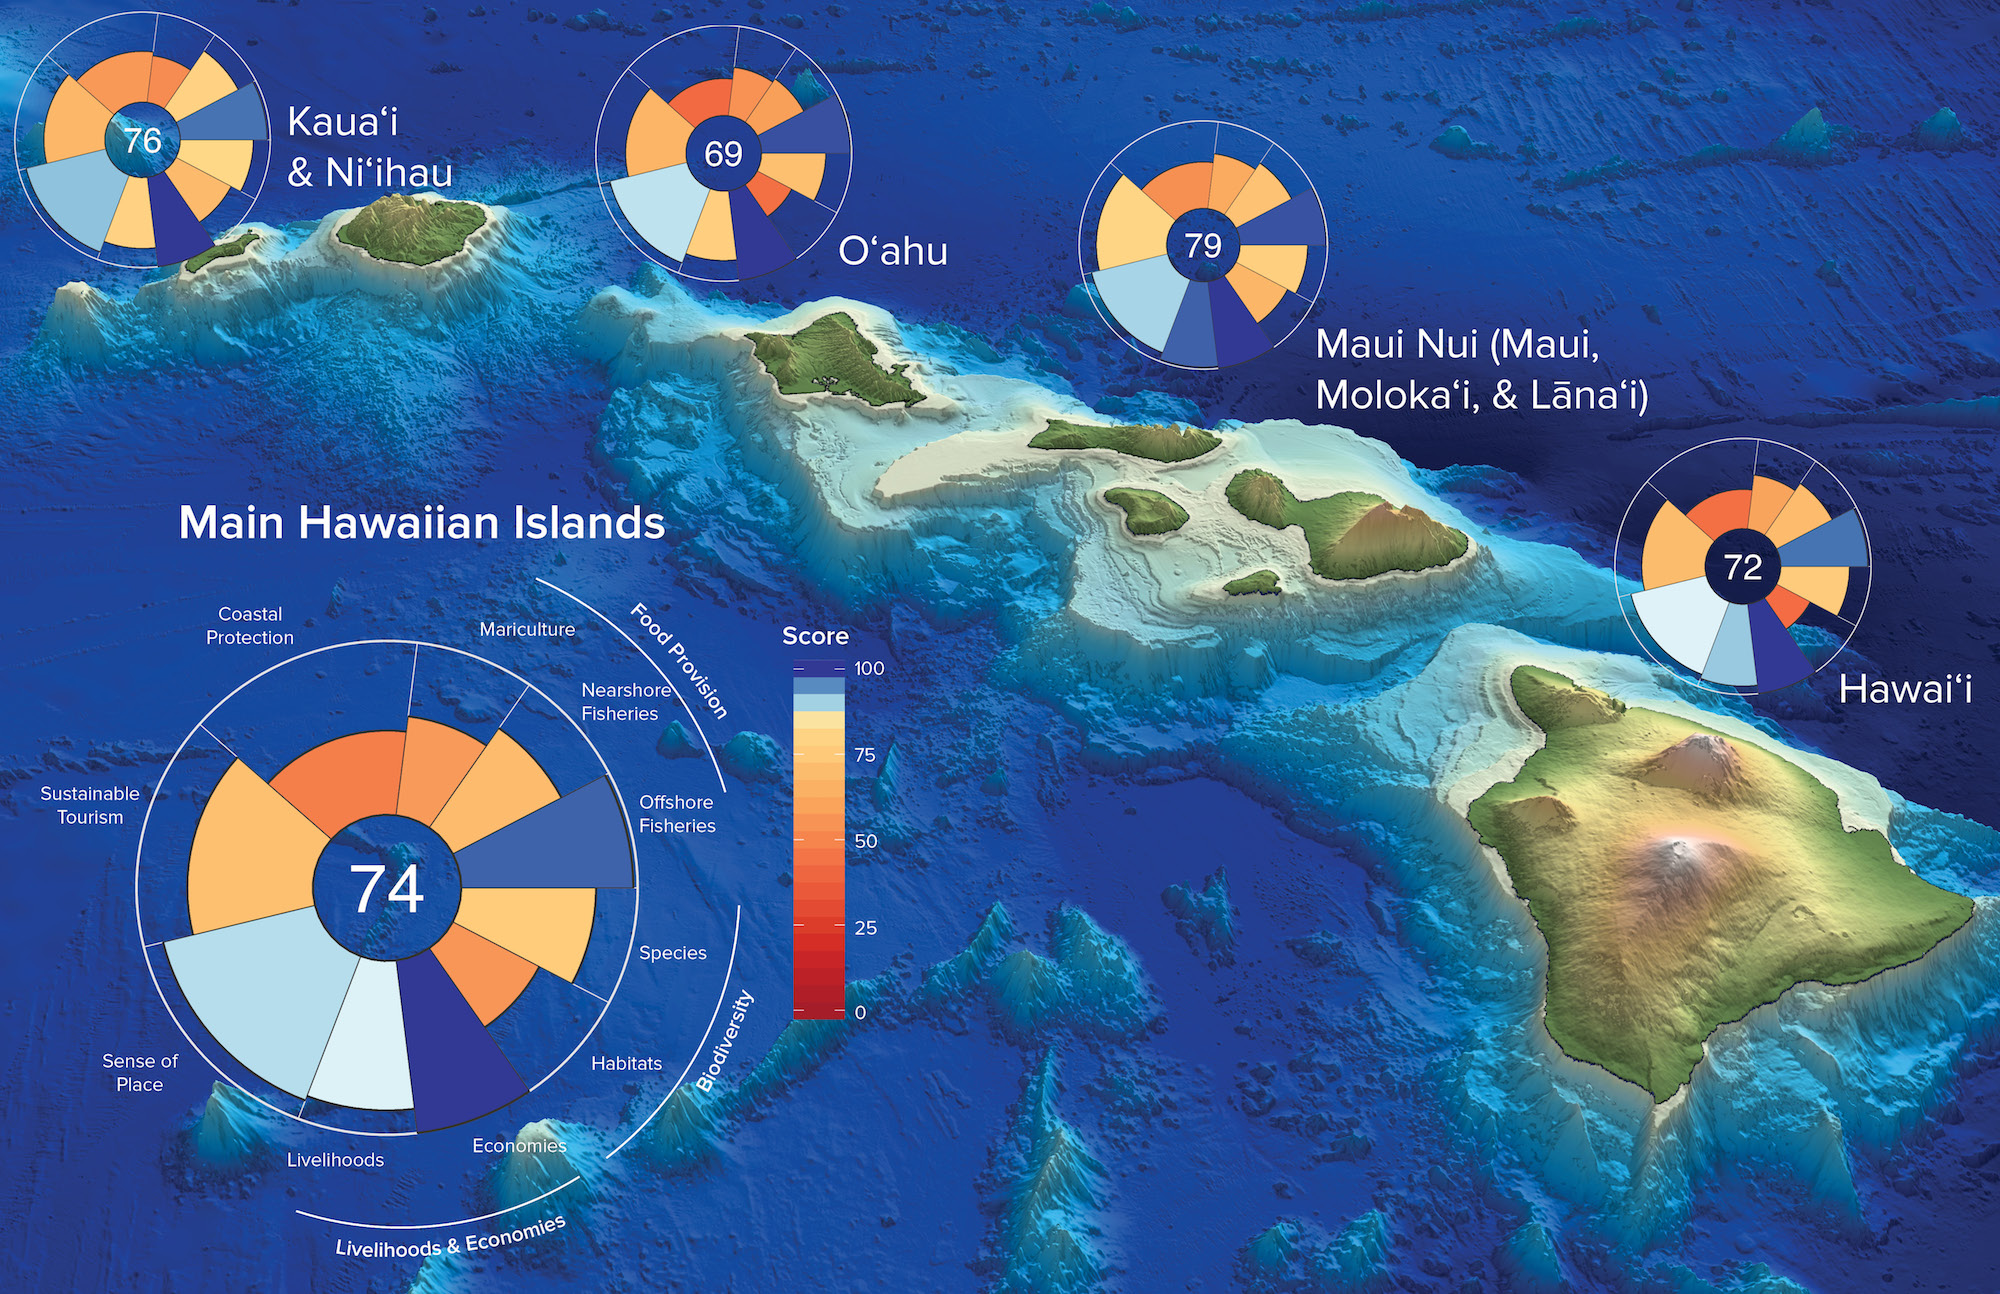 The Ocean Health Index scores for Hawaii's main islands.